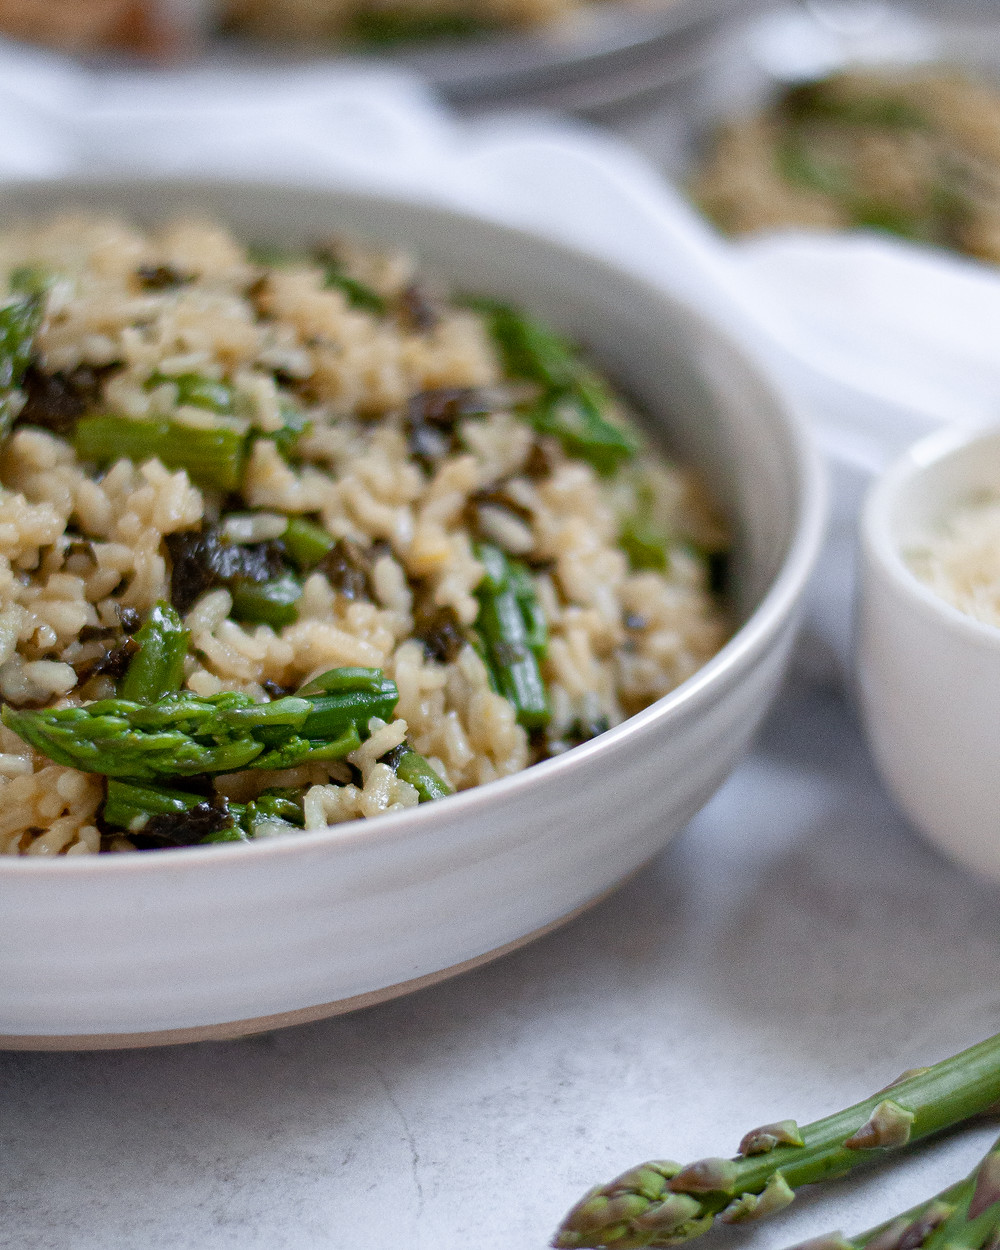 Close up of a serving bowl of this lemon risotto with asparagus and kale. There is fresh asparagus in the foreground, and a cup of grated parmesan and two plates with risotto on it in the background.